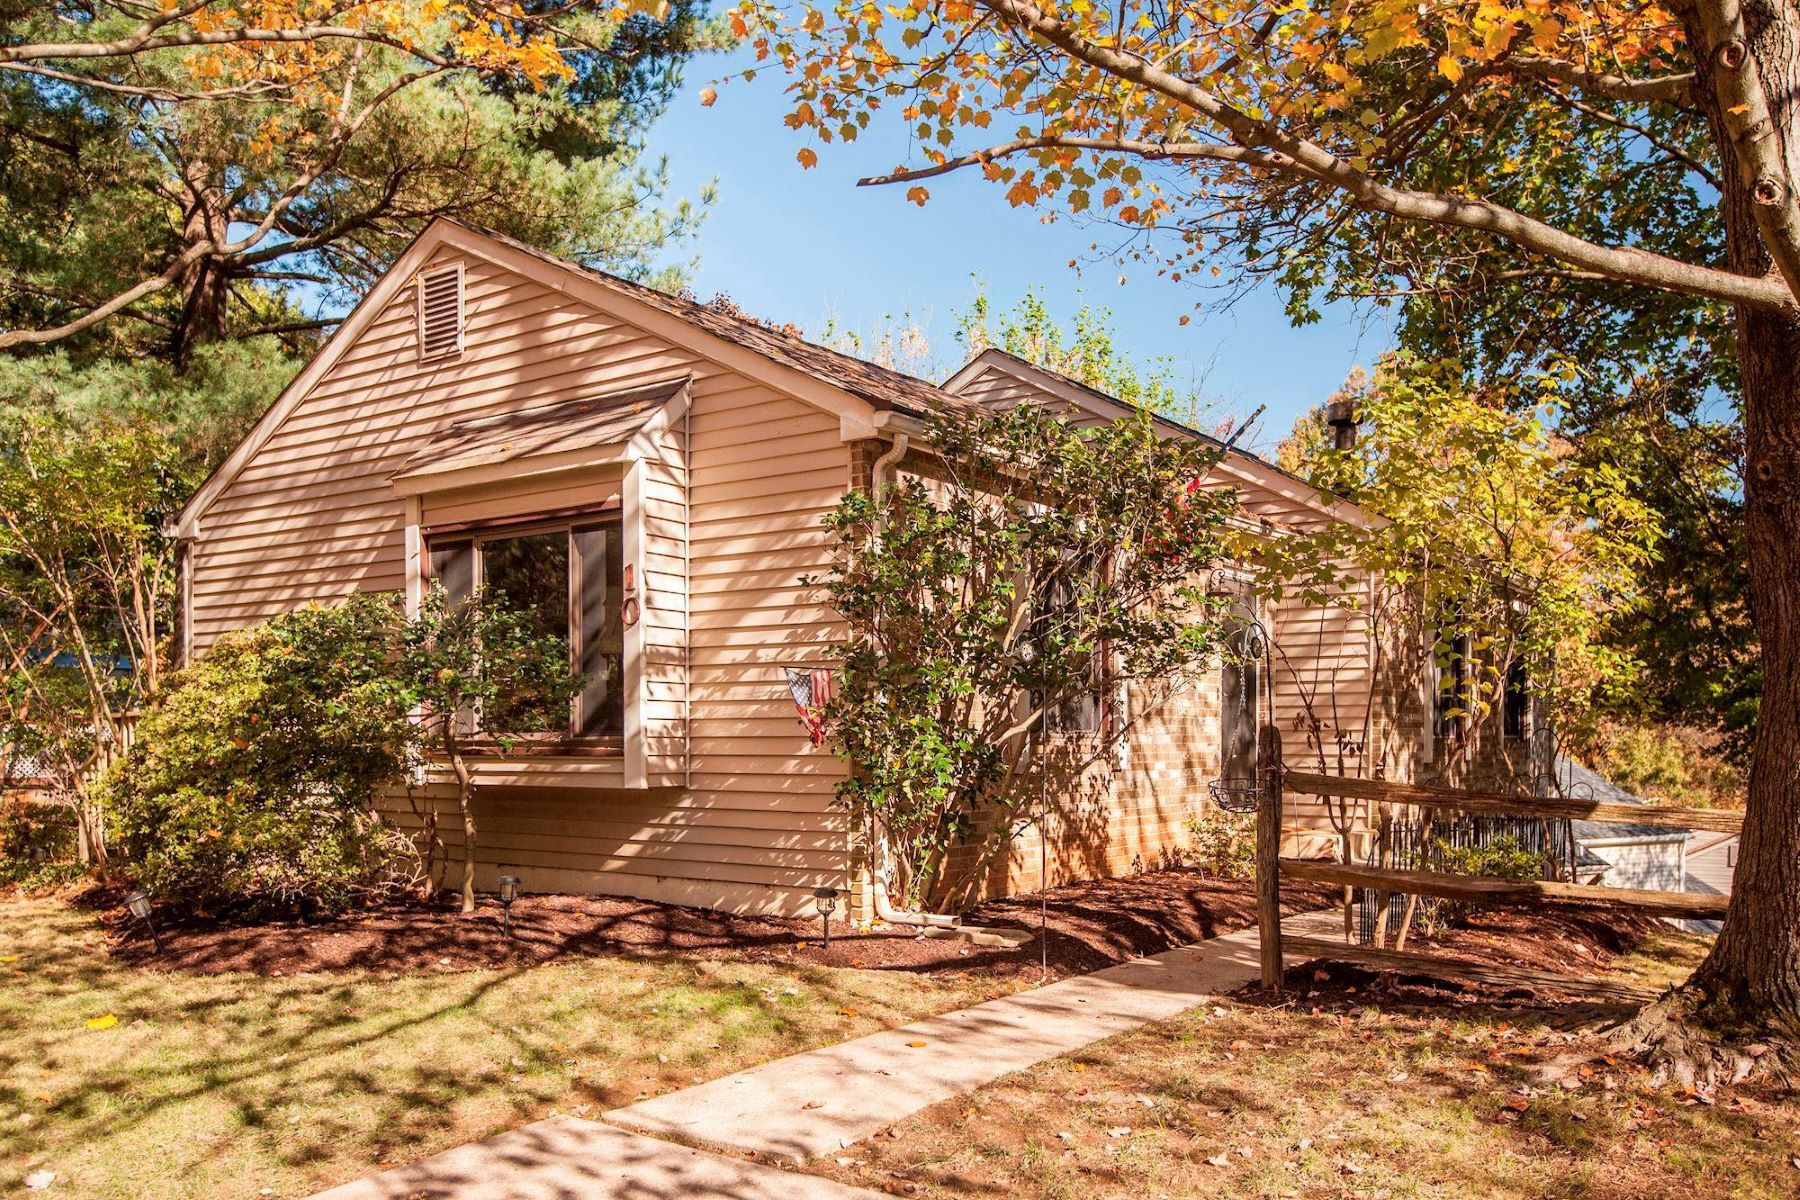 Single Family Homes for Sale at 10 Pavilion Dr Gaithersburg, Maryland 20878 United States